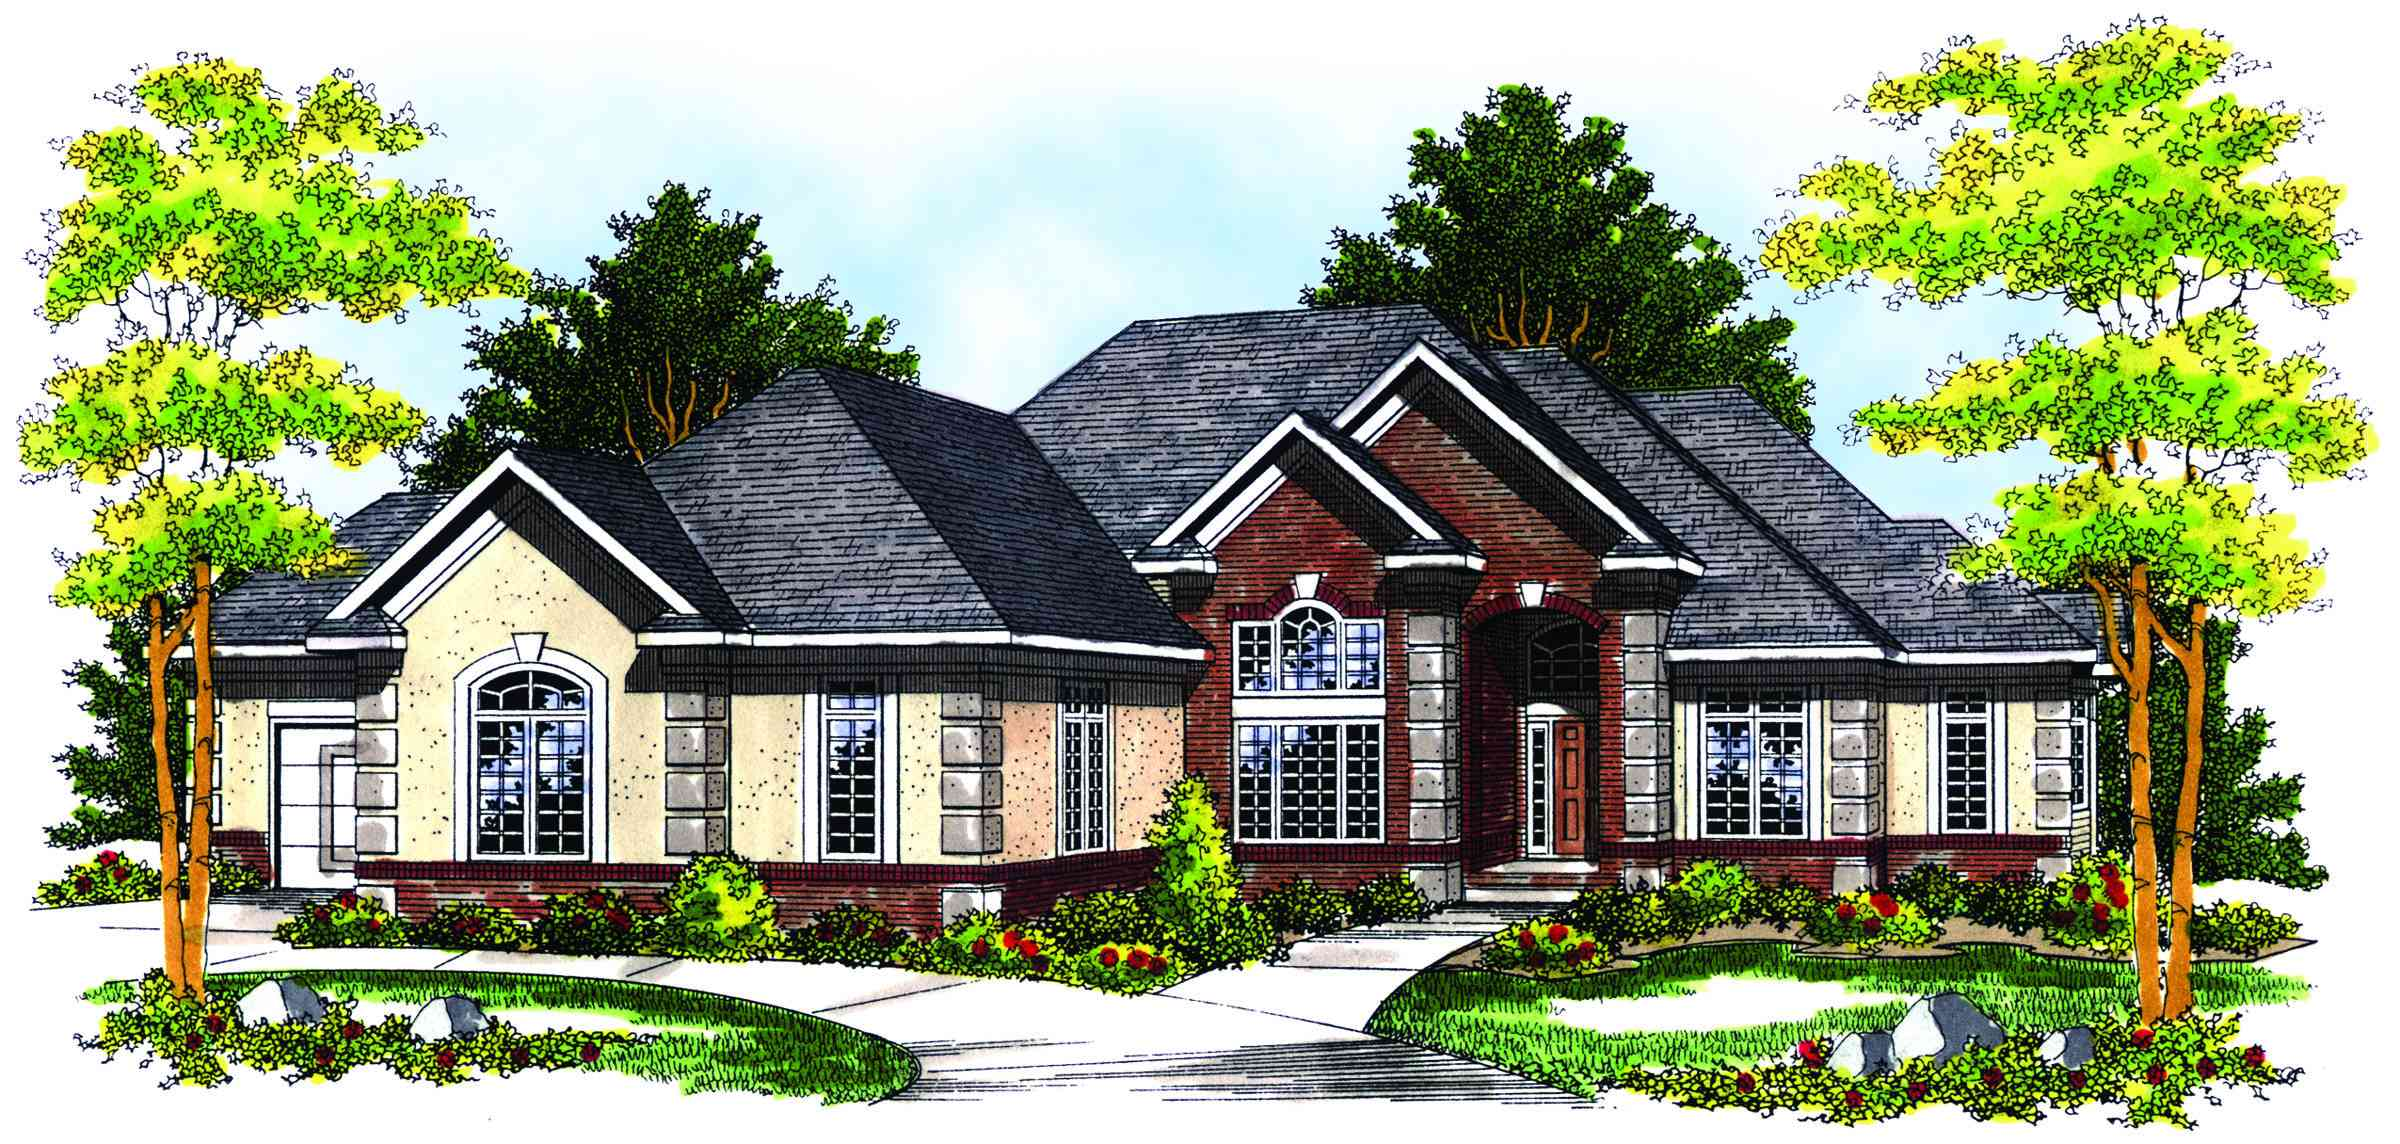 hillside house plans perfect for hillside lots 89145ah architectural designs house plans 9515